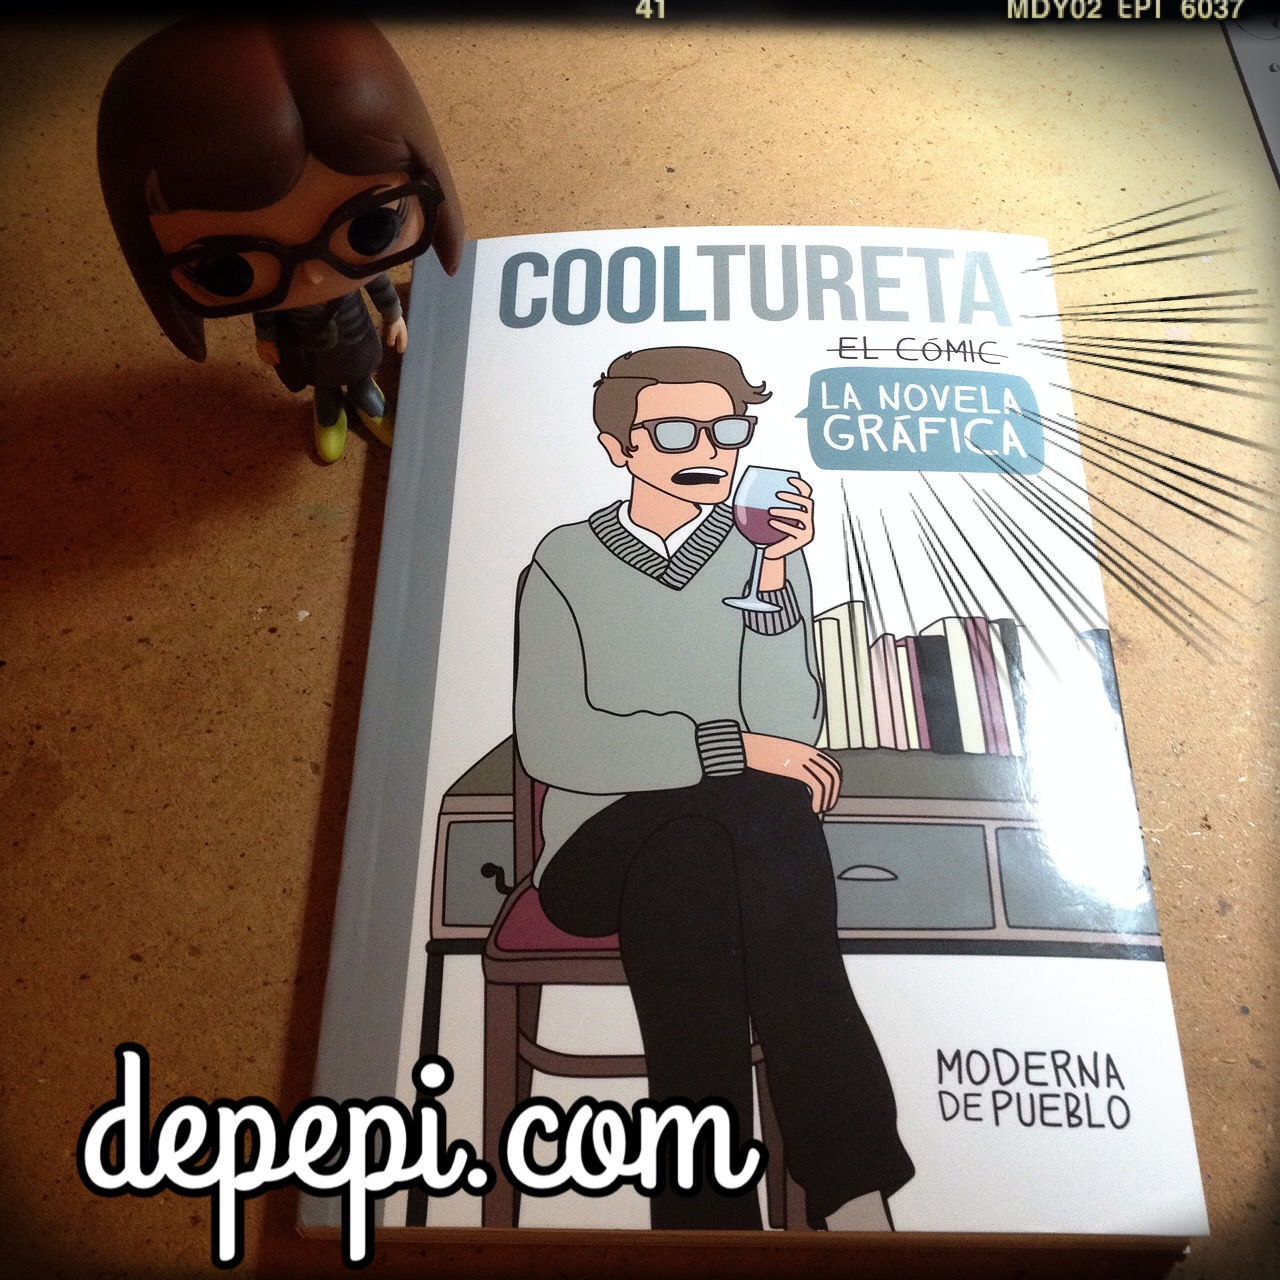 depepi, depepi.com, anthropology, comics, graphic novel, cooltureta, hipster, cool, fake geek